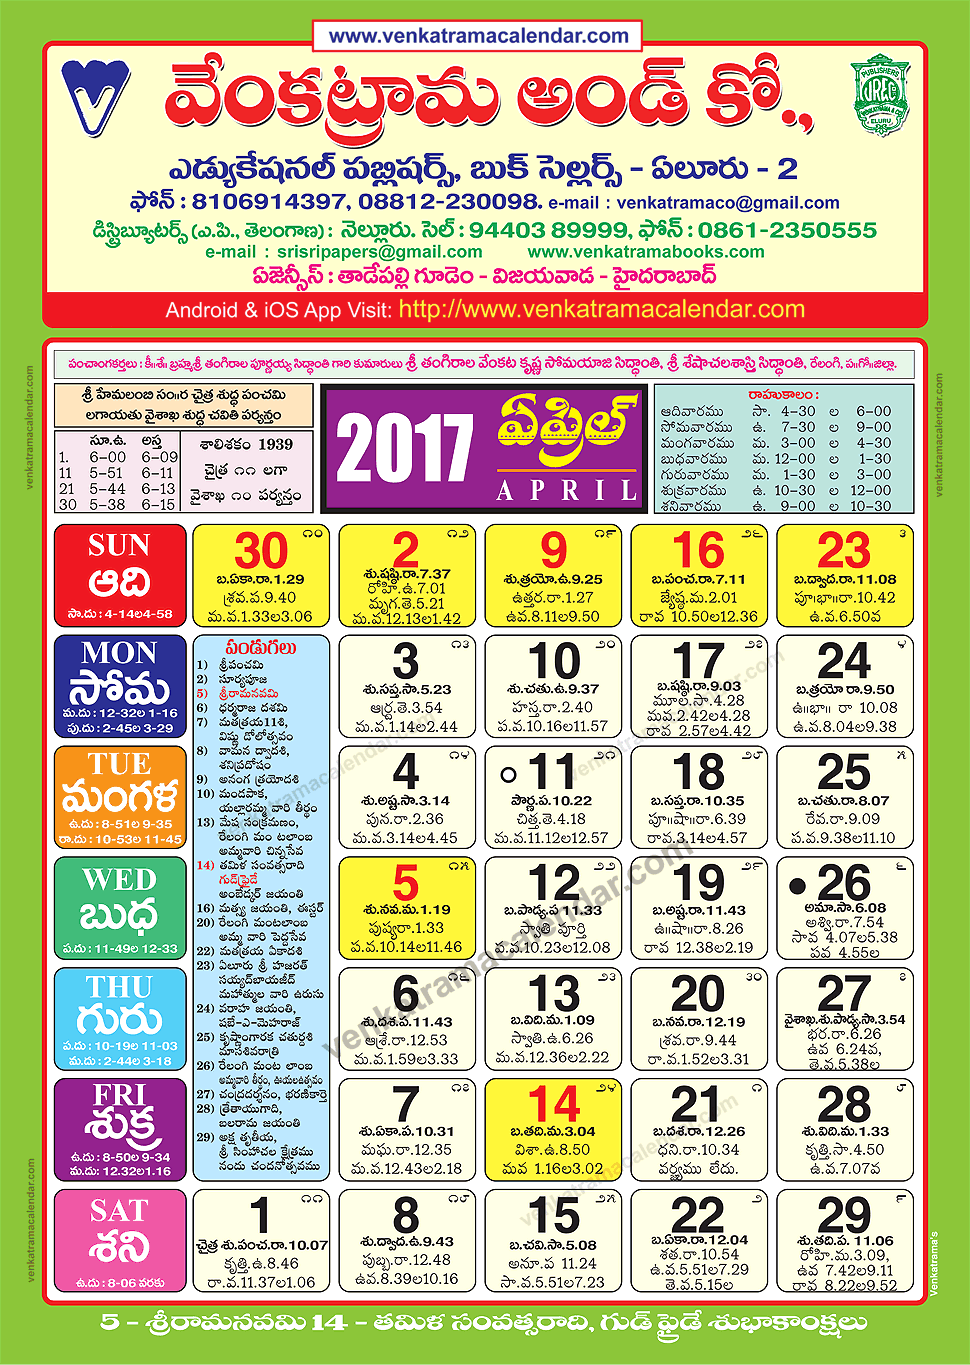 April Venkatrama Co Calendar : April venkatrama co colour telugu calendar